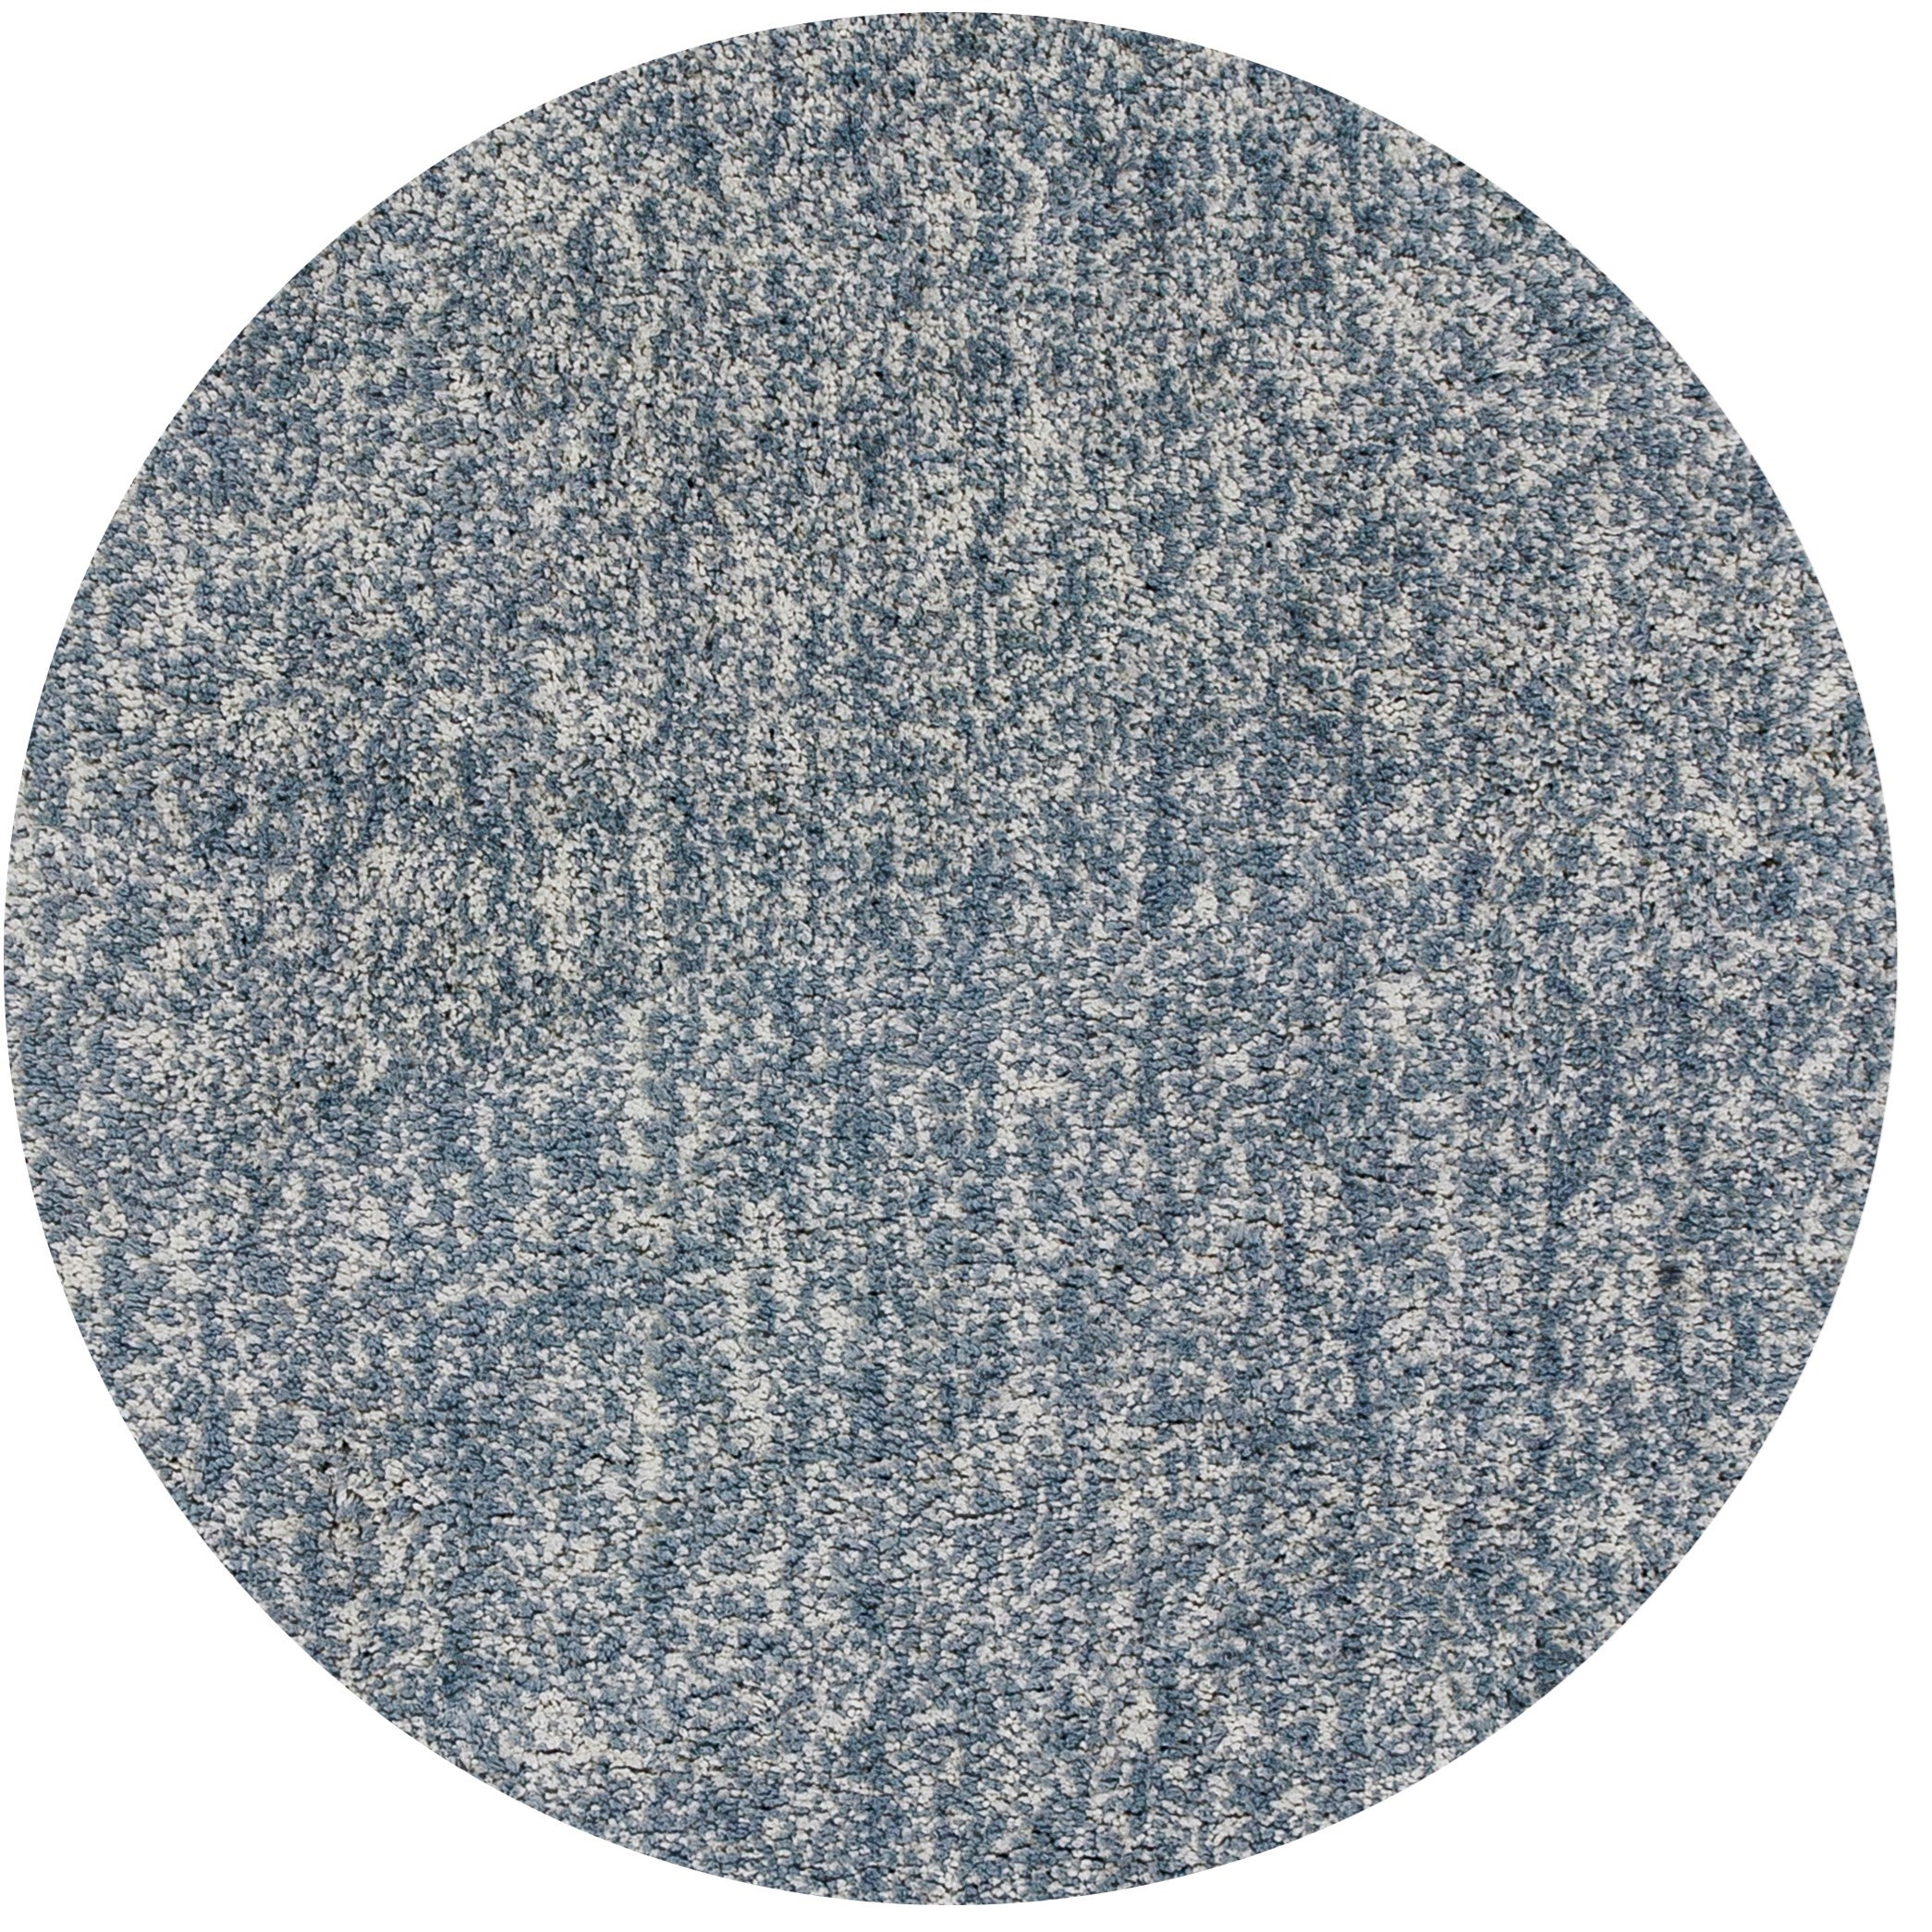 Bliss 6' X 6' Slate Heather Shag Area Rug by Kas at Zak's Home